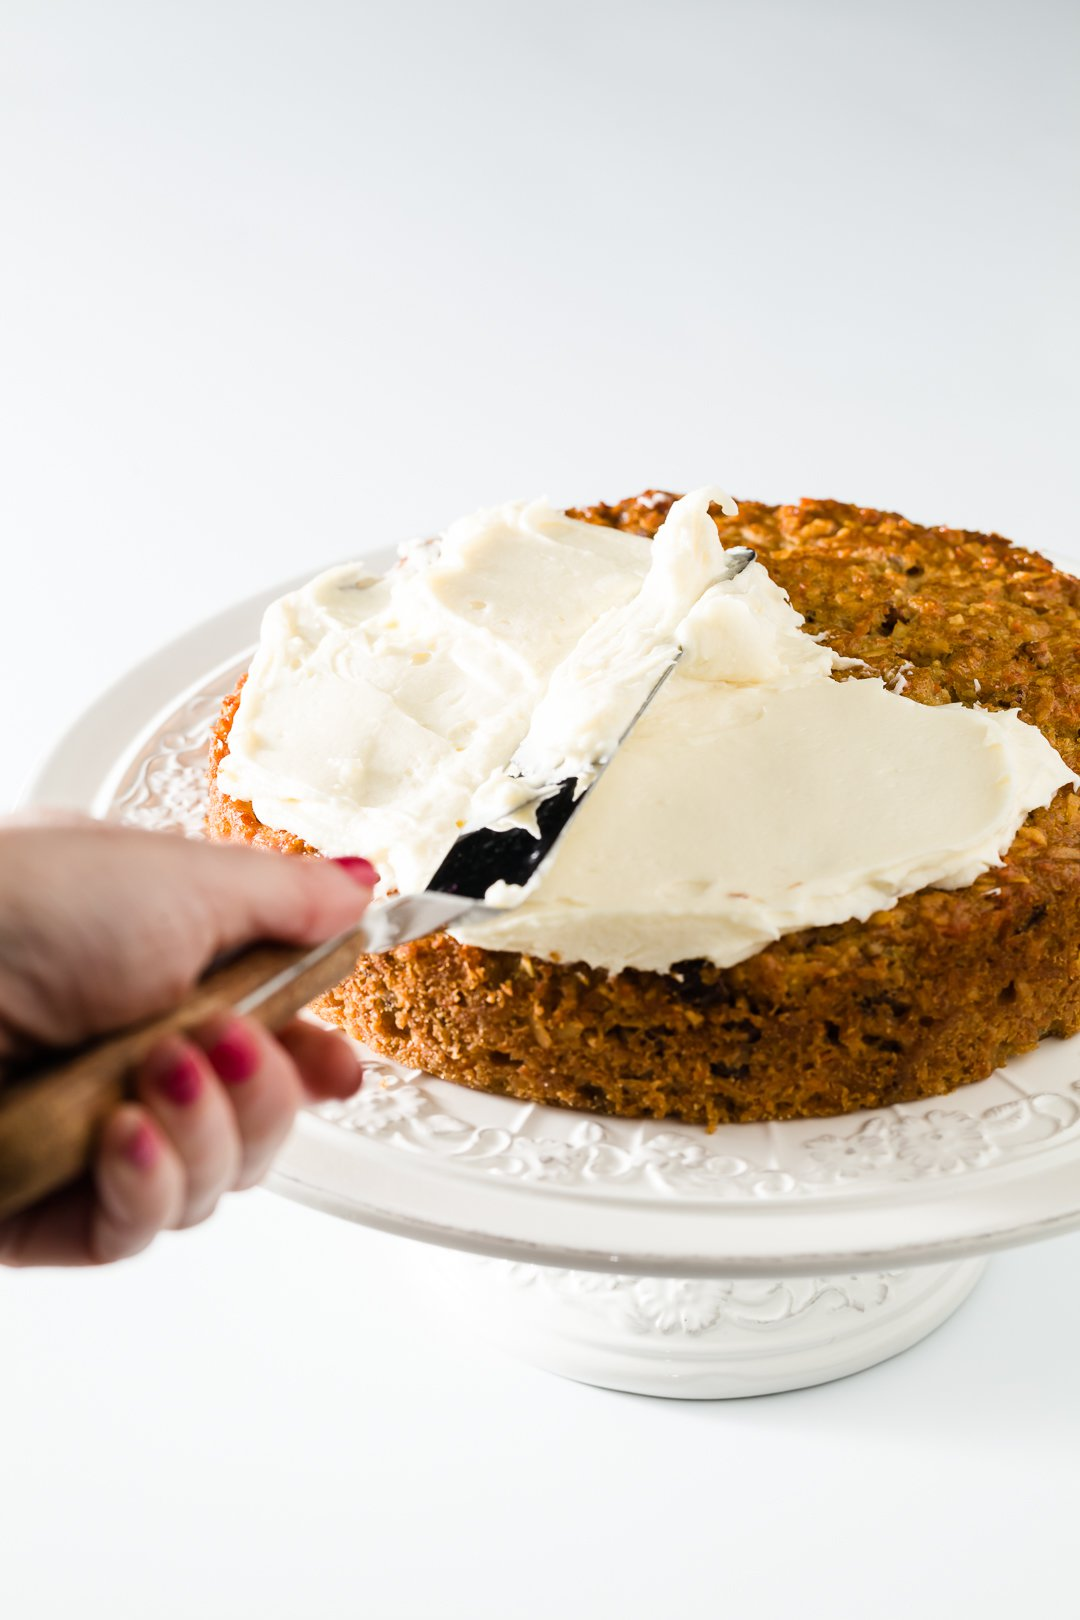 Spreading cream cheese frosting on a carrot cake